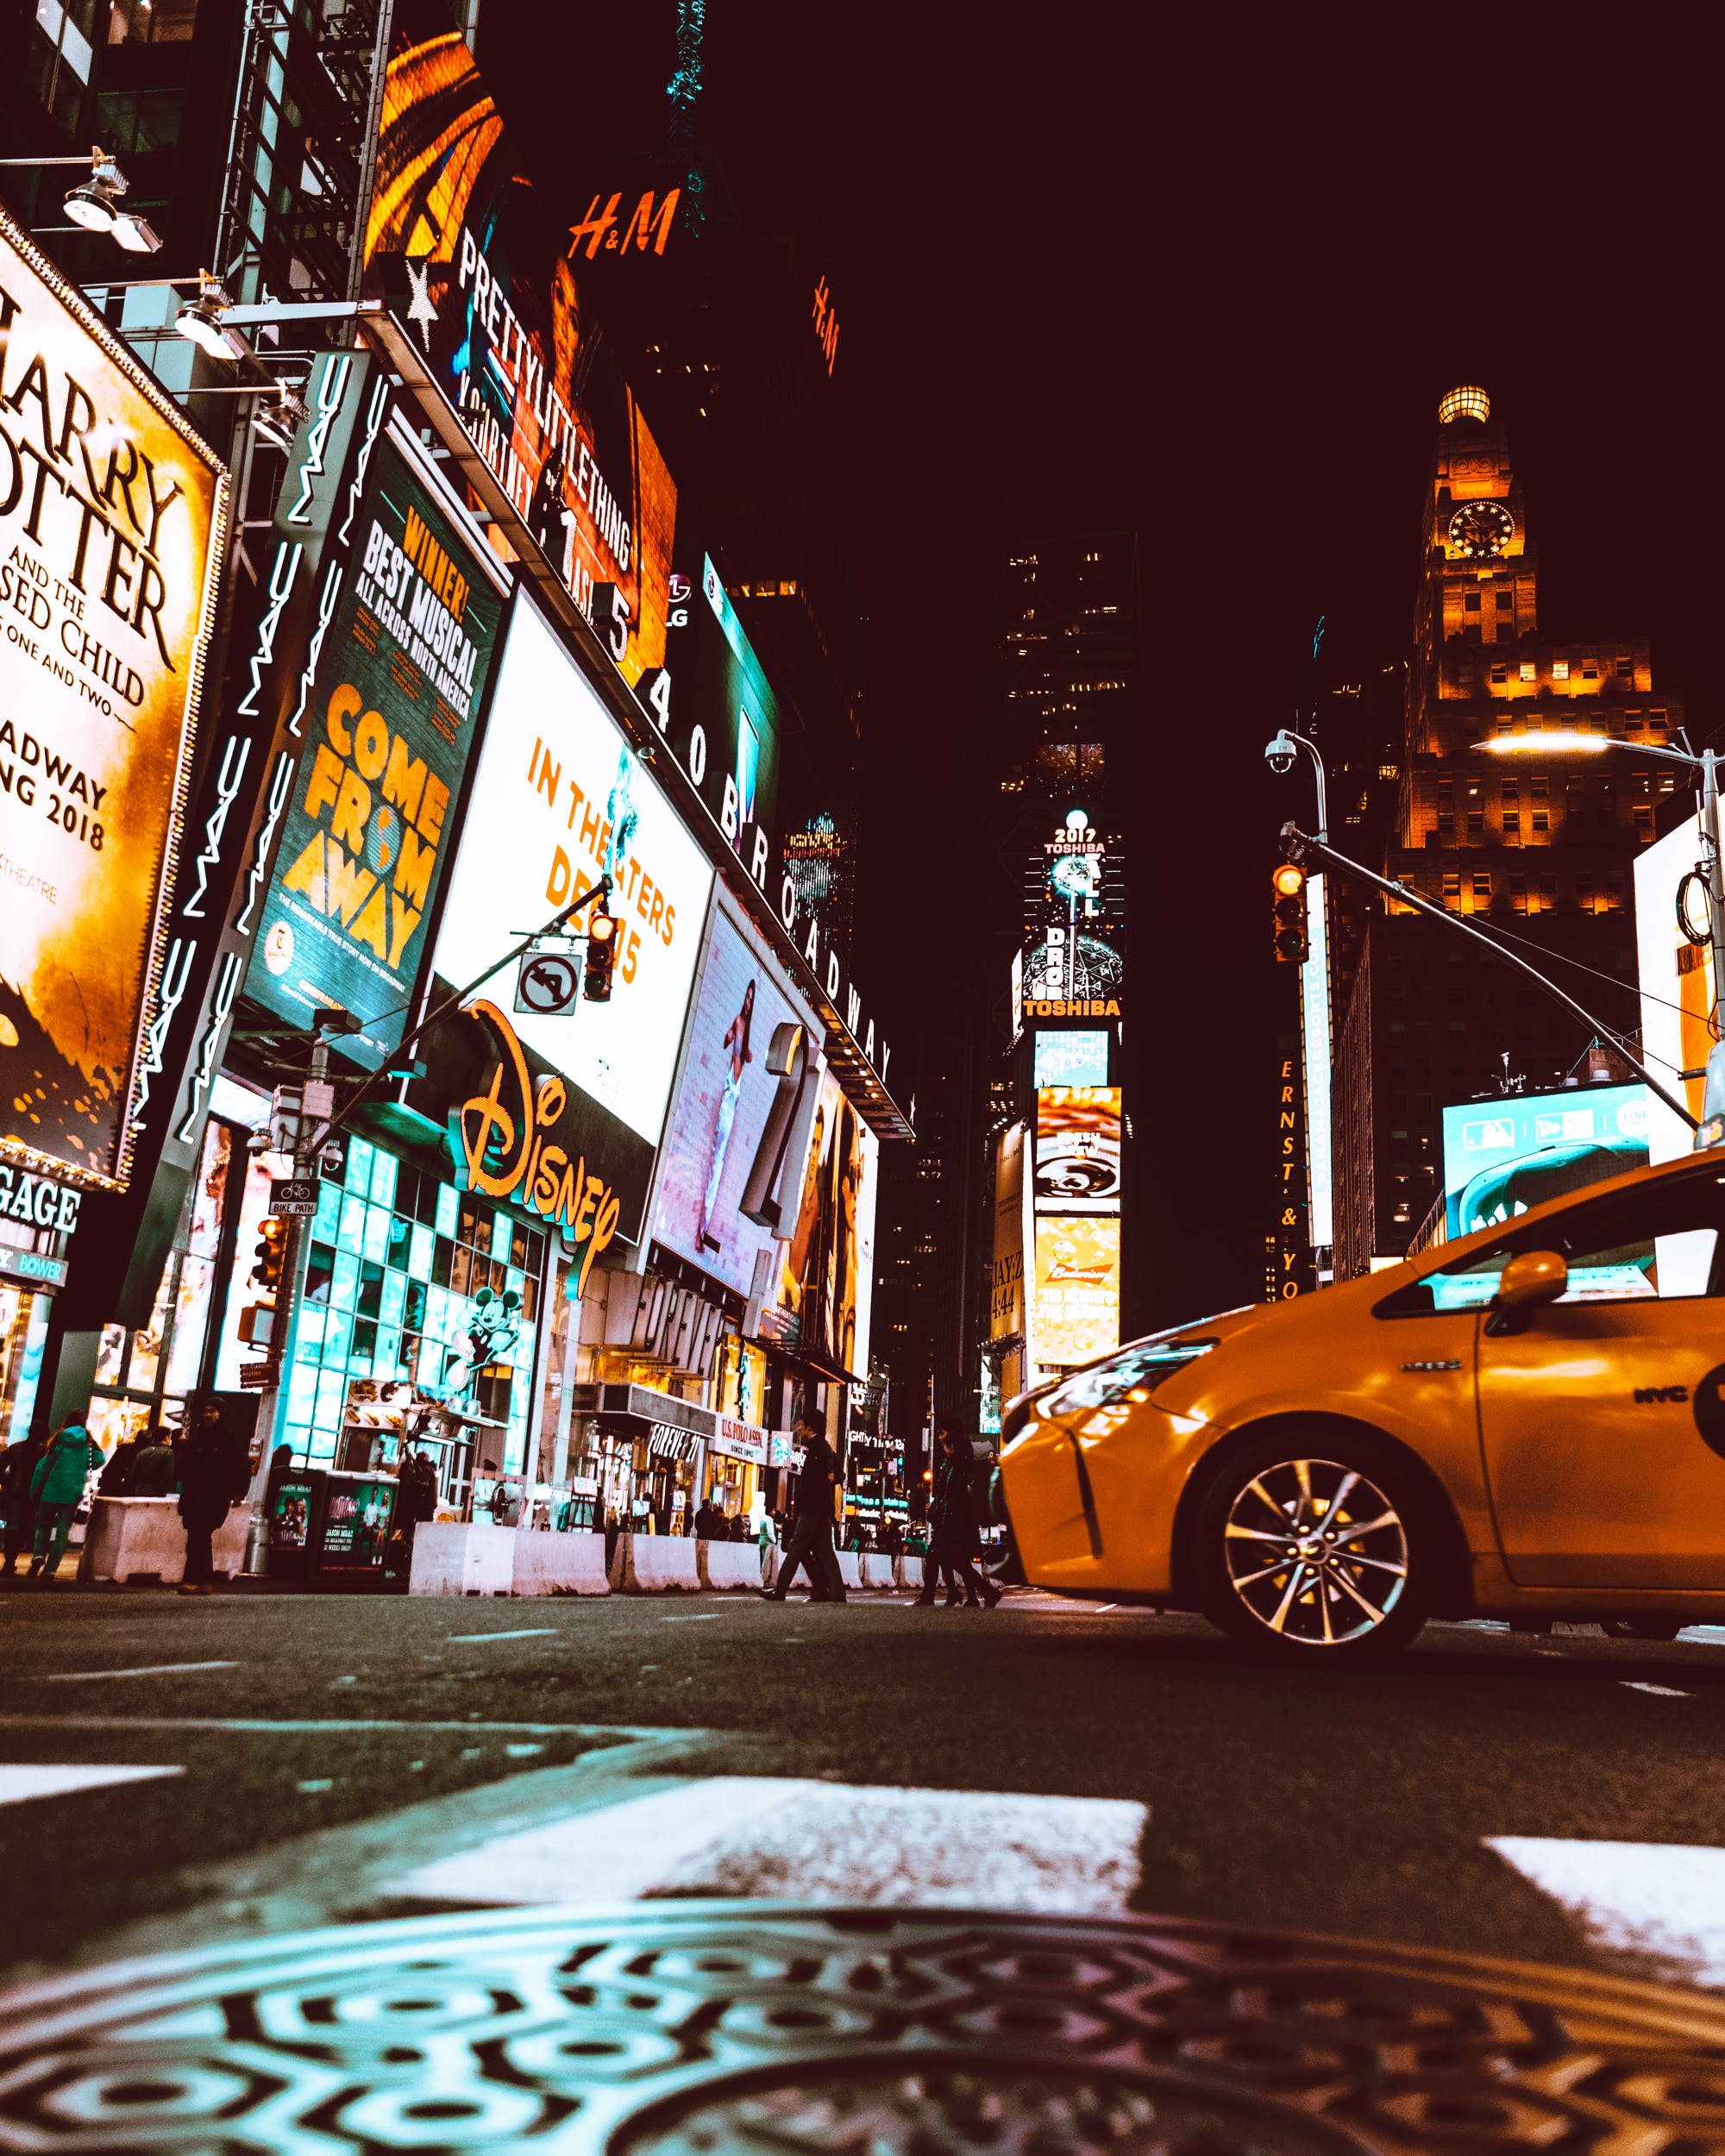 Yellow Taxi in the Middle of New York Times Square